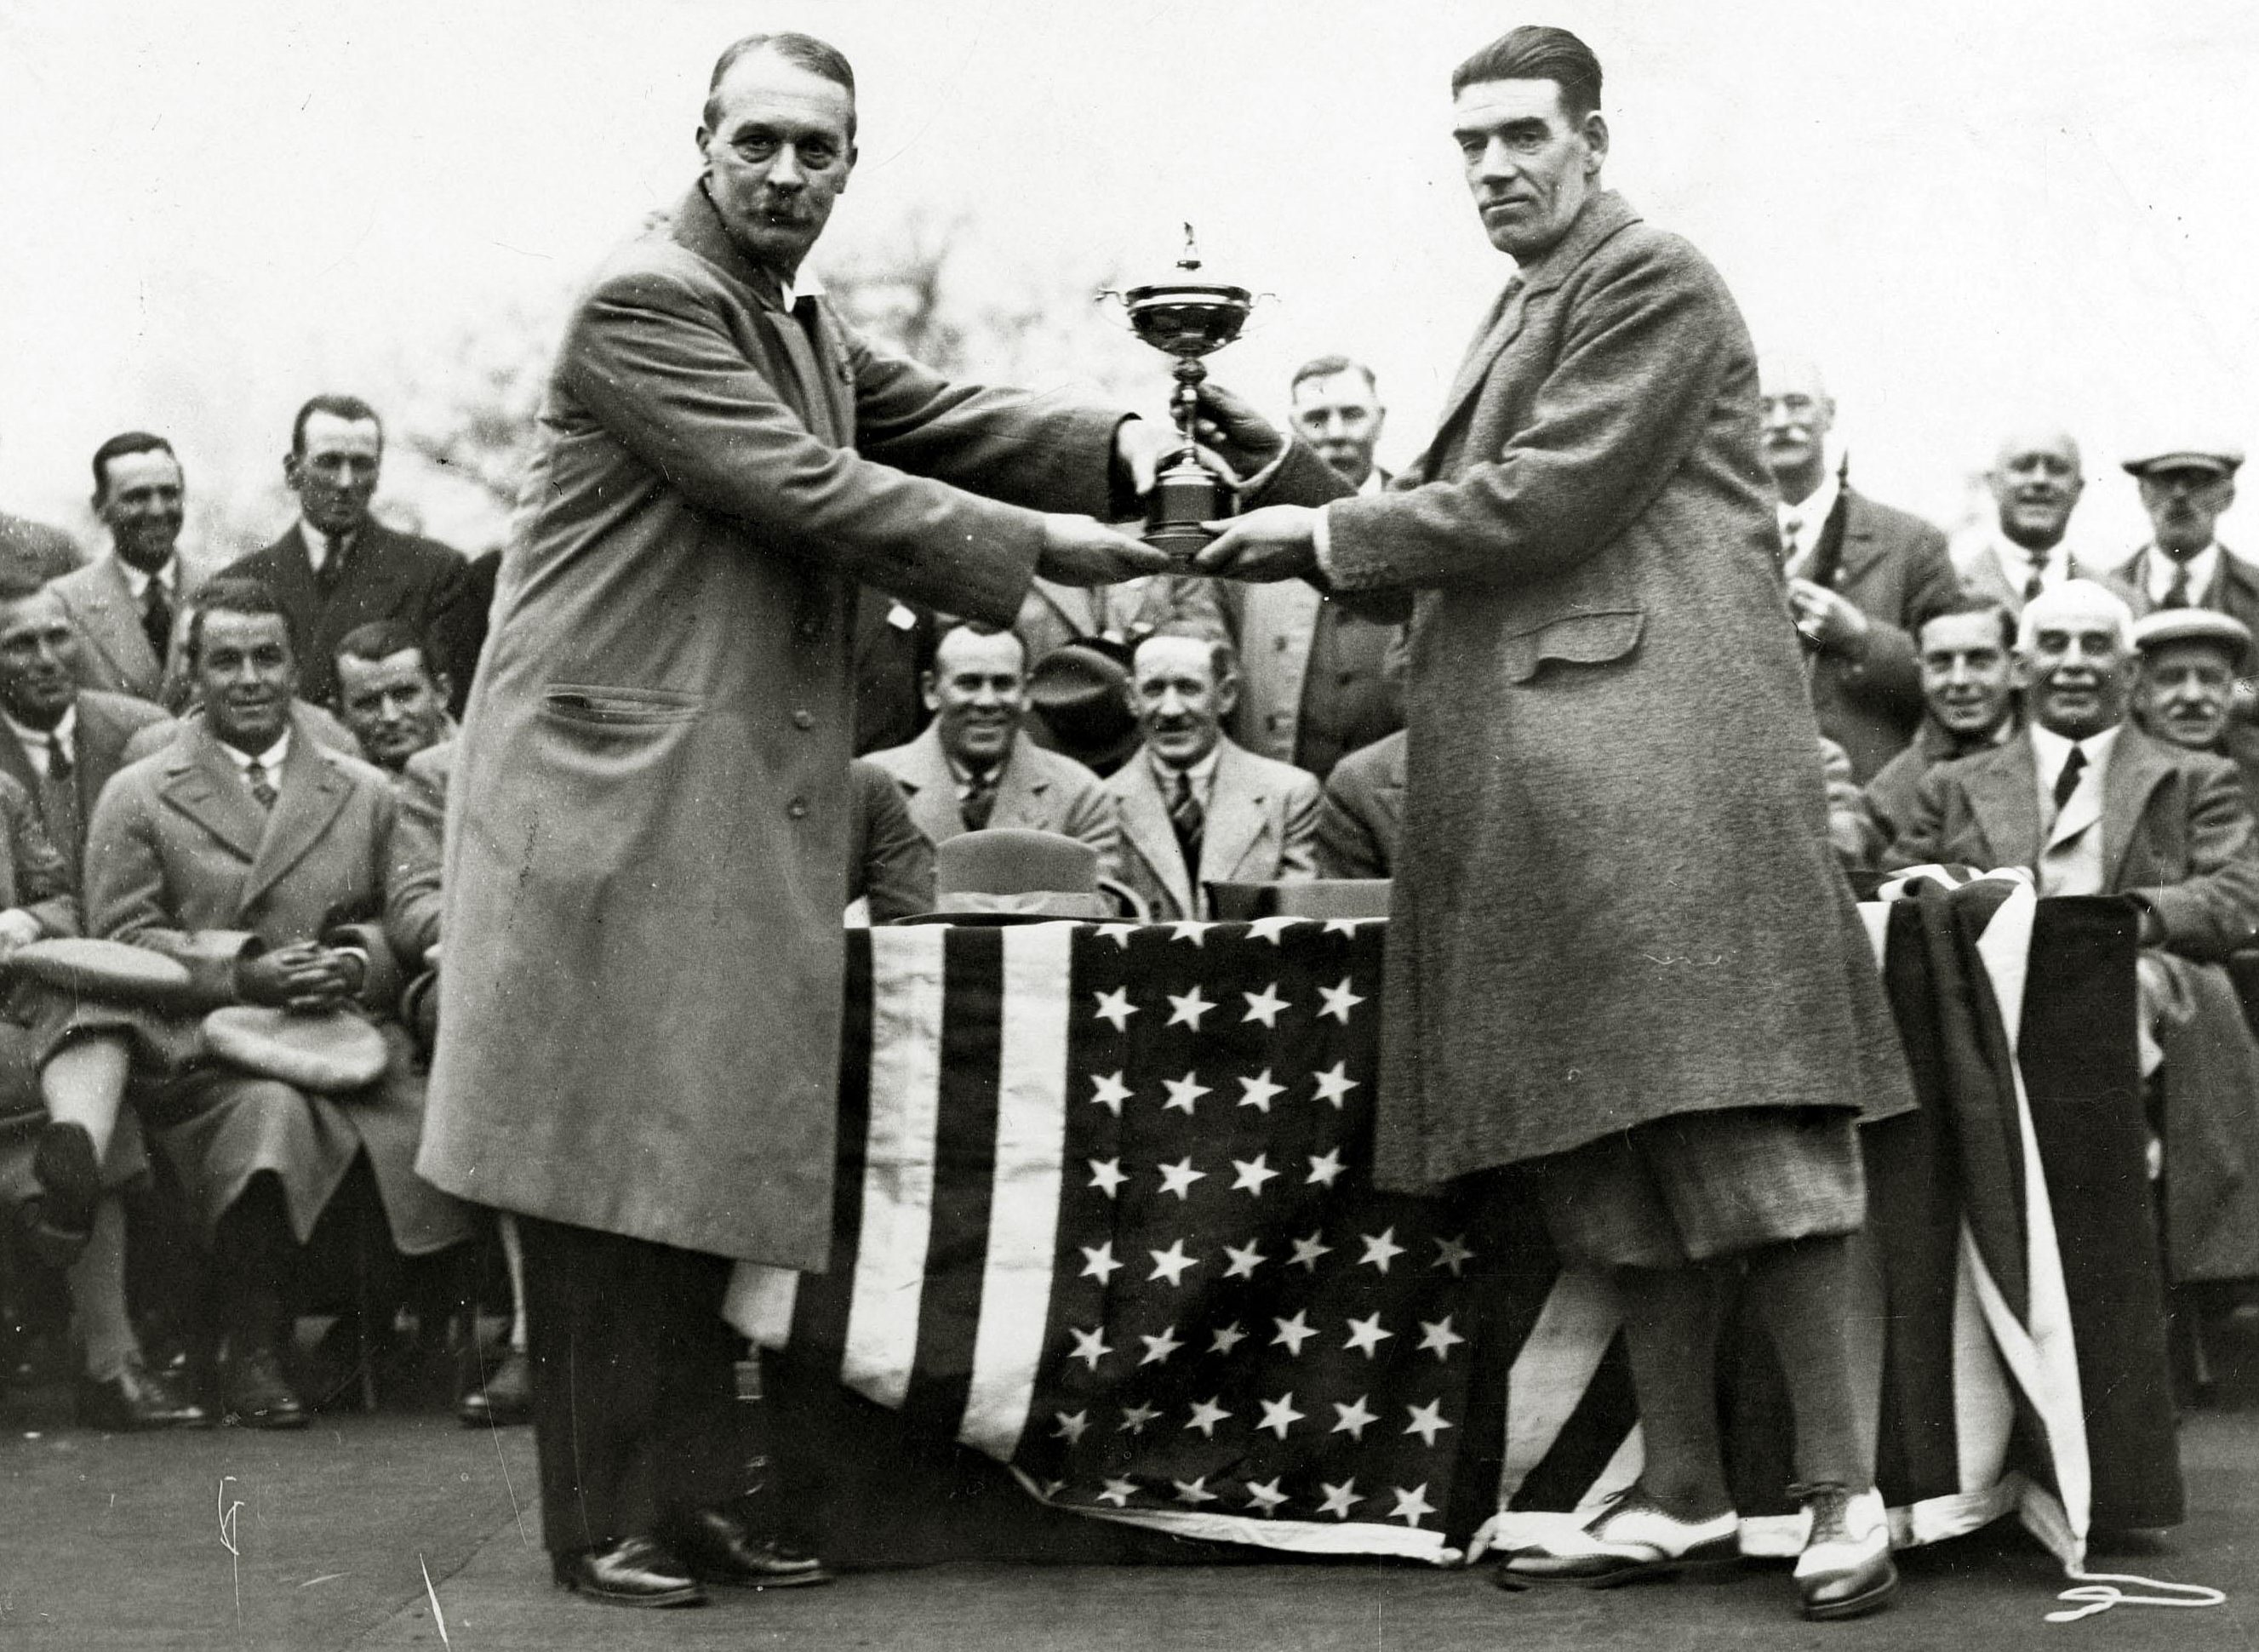 Samuel Ryder, the donor of the Ryder Cup, presents the trophy to winning captain, Great Britain's George Duncan at Moortown in Leeds in 1929